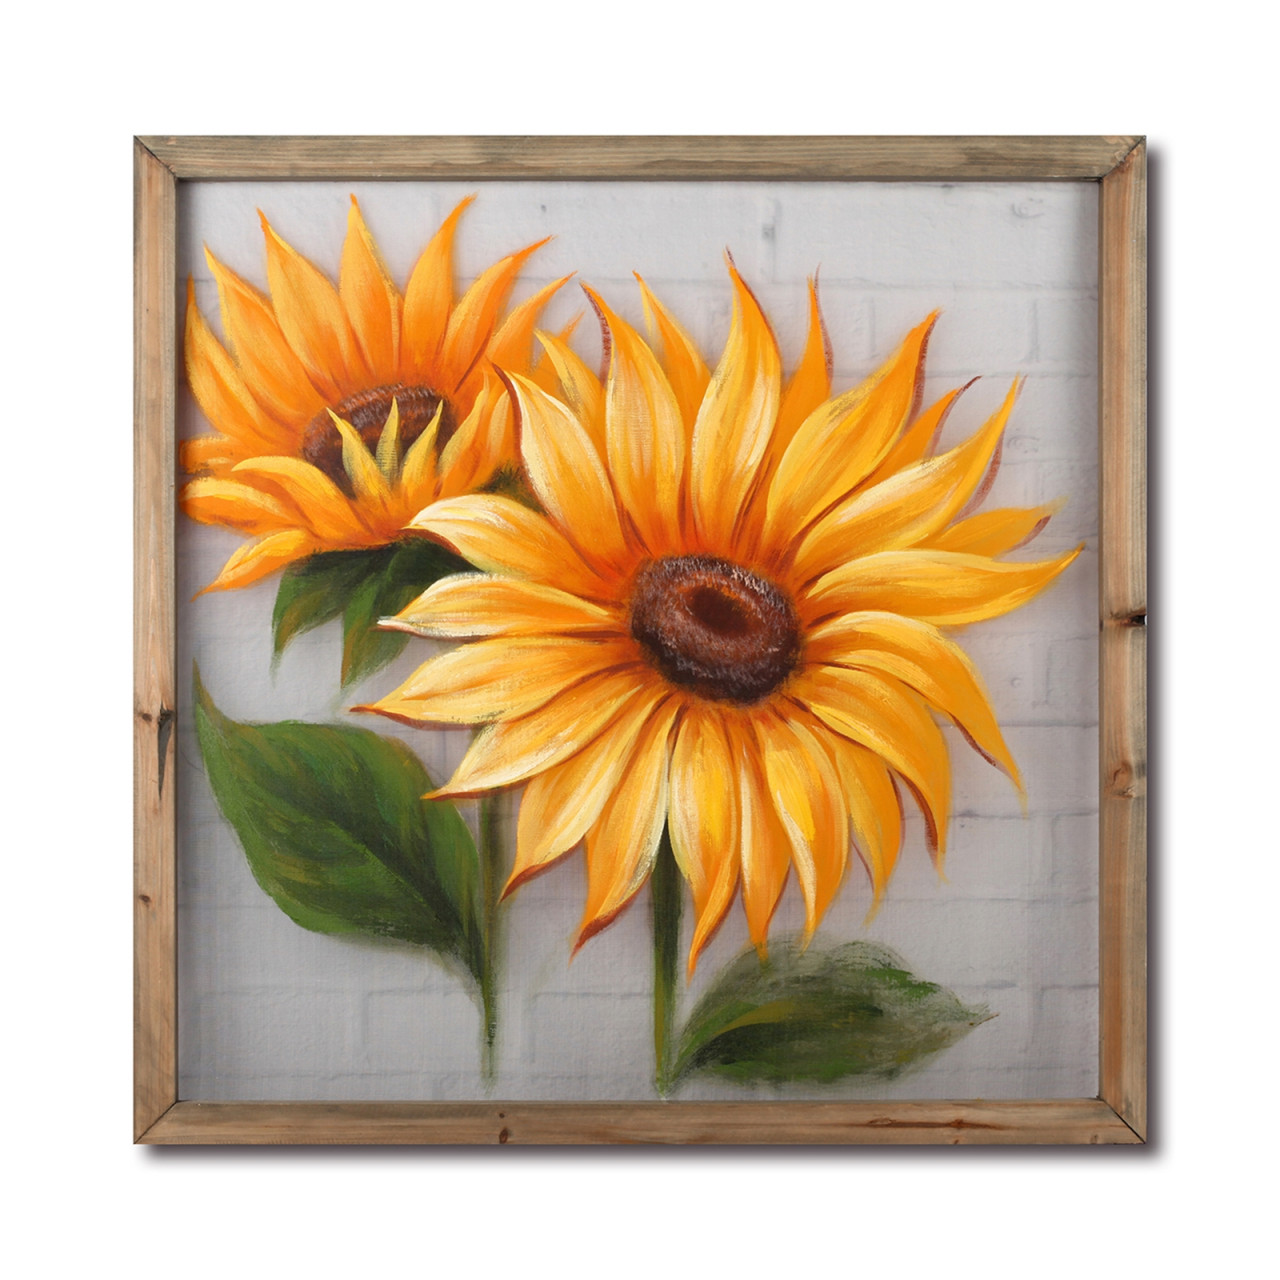 NTK-Collection Wandbild Sonnenblume